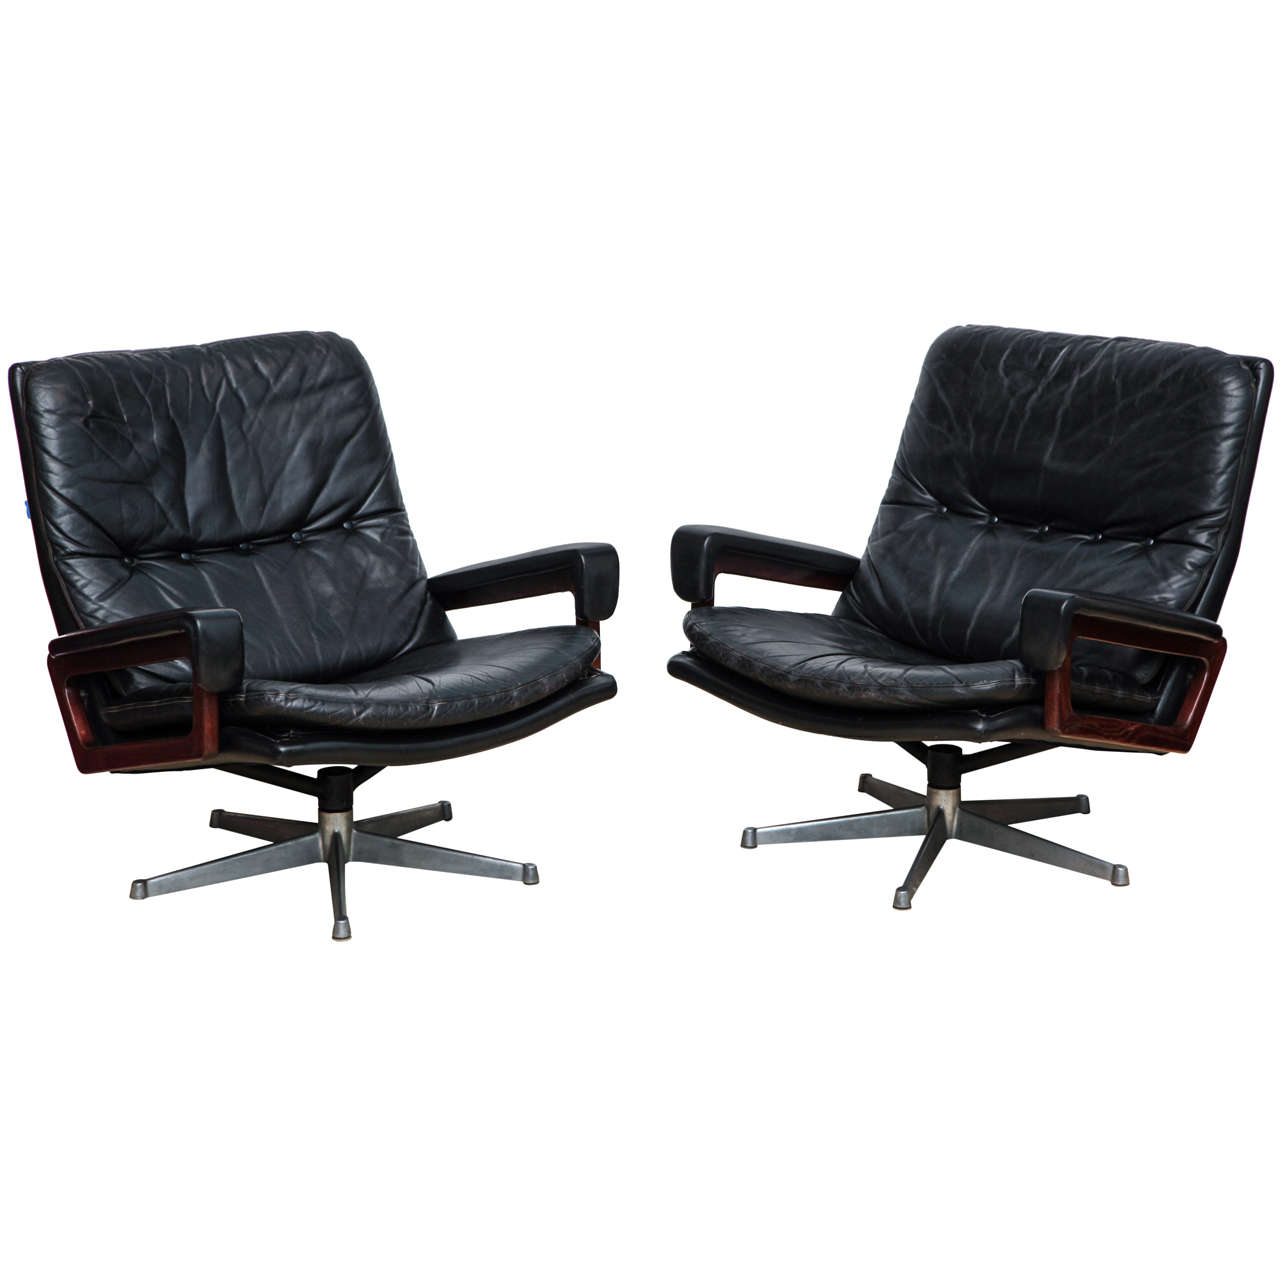 Pair Of King Swivel Lounge Chairs By Andre Vandenbeuck At 1stdibs